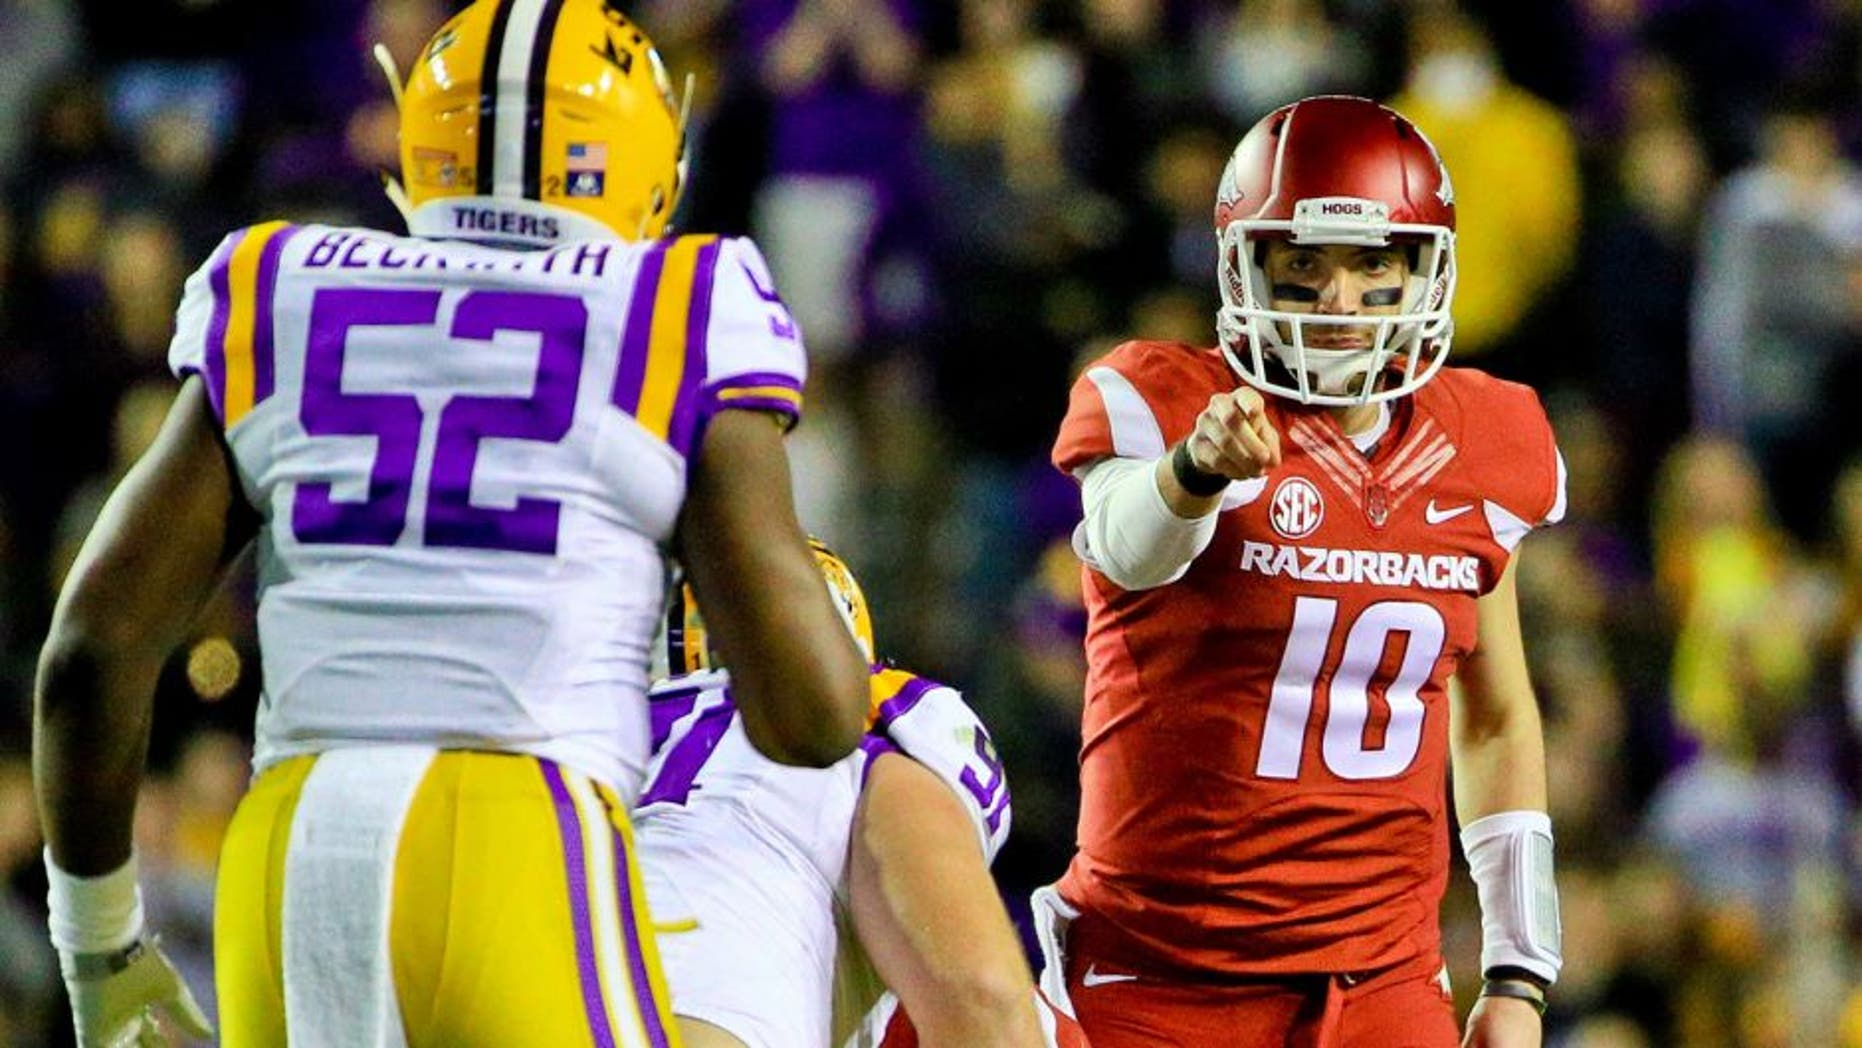 Nov 14, 2015; Baton Rouge, LA, USA; Arkansas Razorbacks quarterback Brandon Allen (10) against the LSU Tigers during the second quarter of a game at Tiger Stadium. Mandatory Credit: Derick E. Hingle-USA TODAY Sports